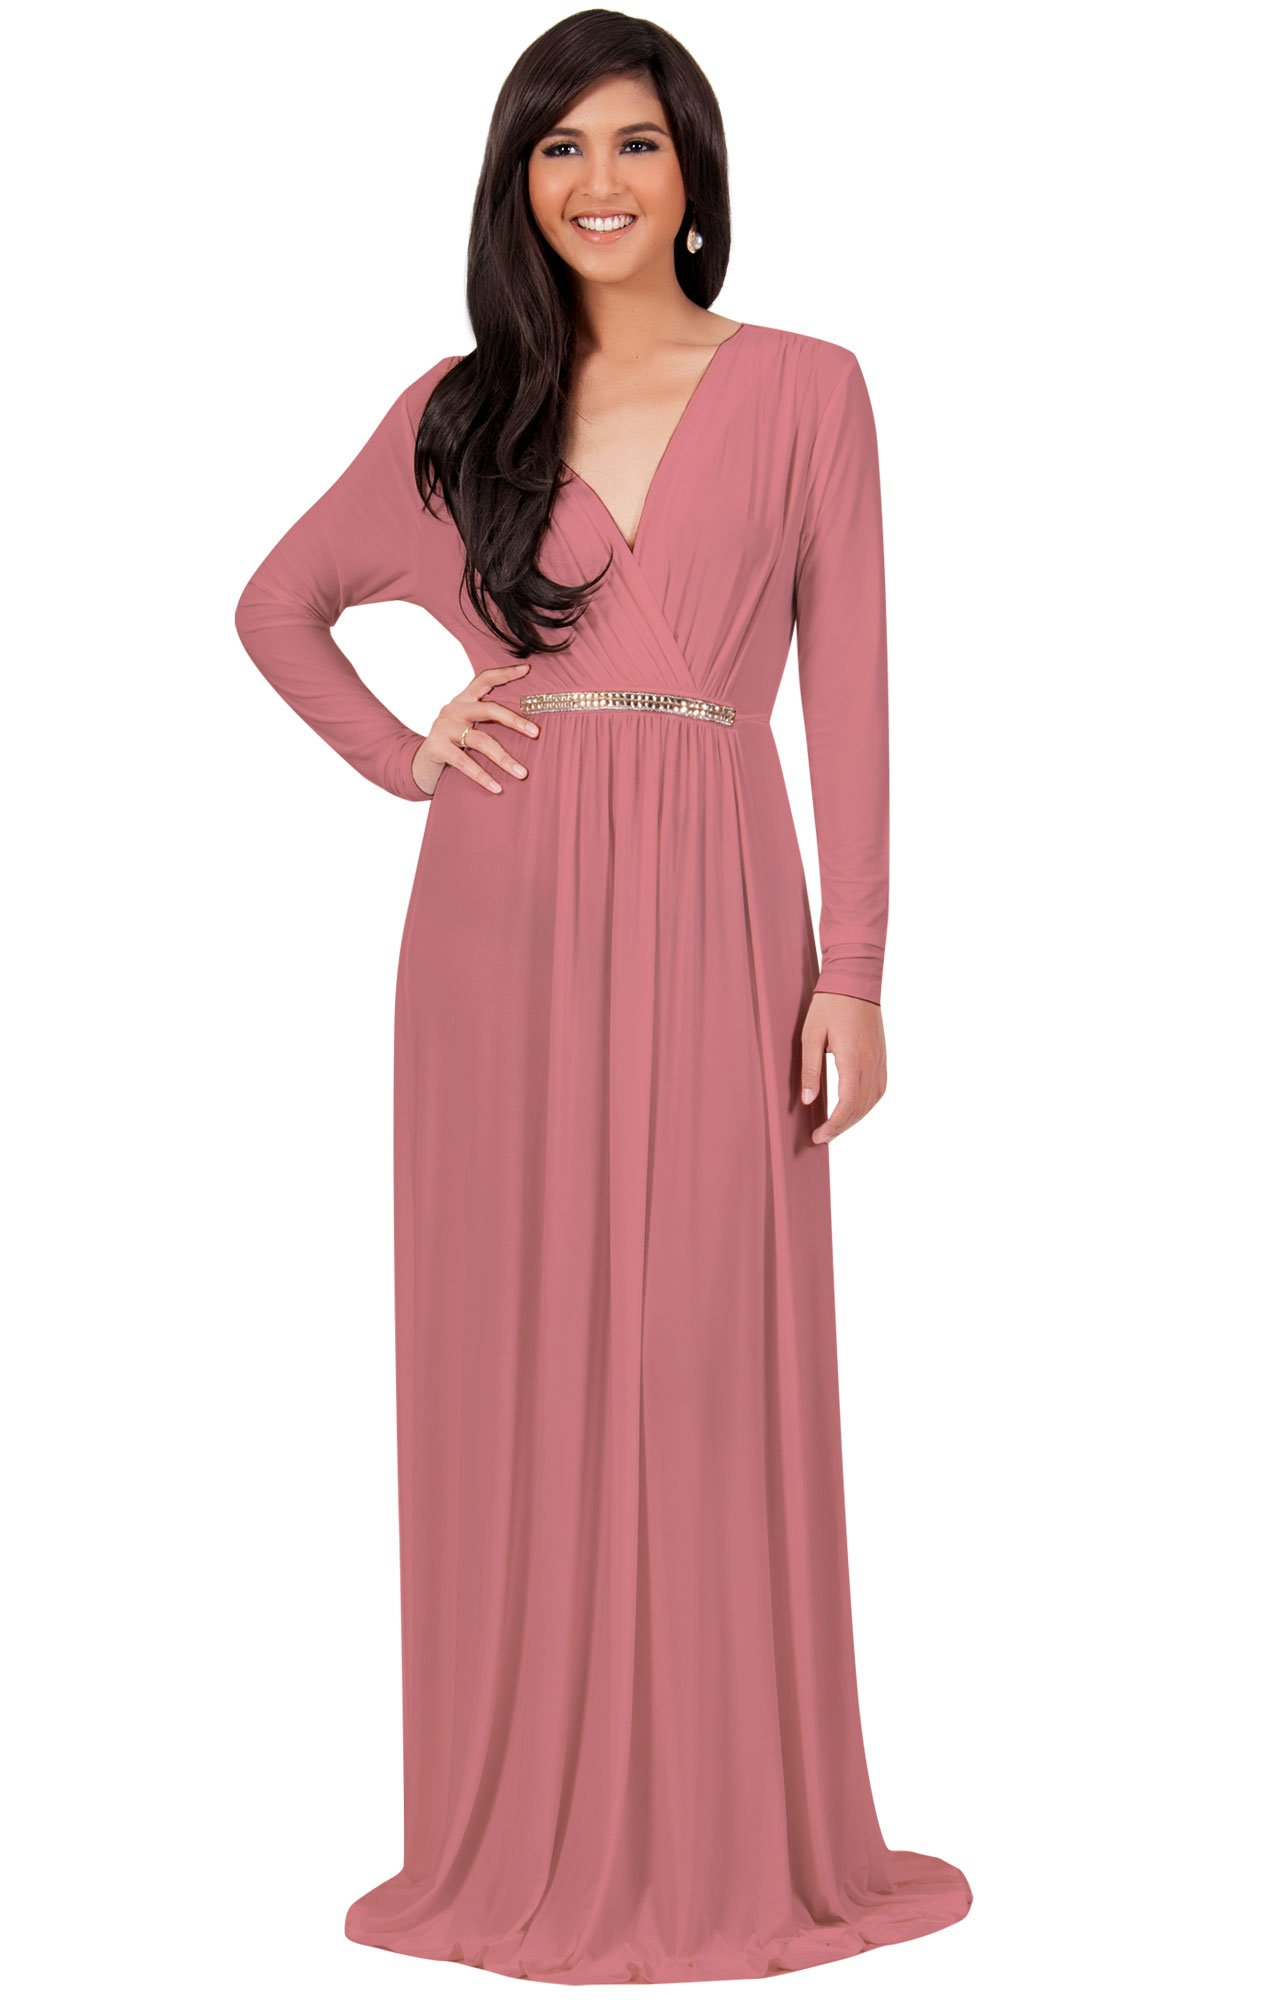 c35bef23b59 KOH KOH Womens Long Sleeve Sleeves Kaftan V-Neck Flowy Formal Wedding Guest  Fall Winter Evening Day Empire Waist Abaya Muslim Gown Gowns Maxi Dress  Dresses